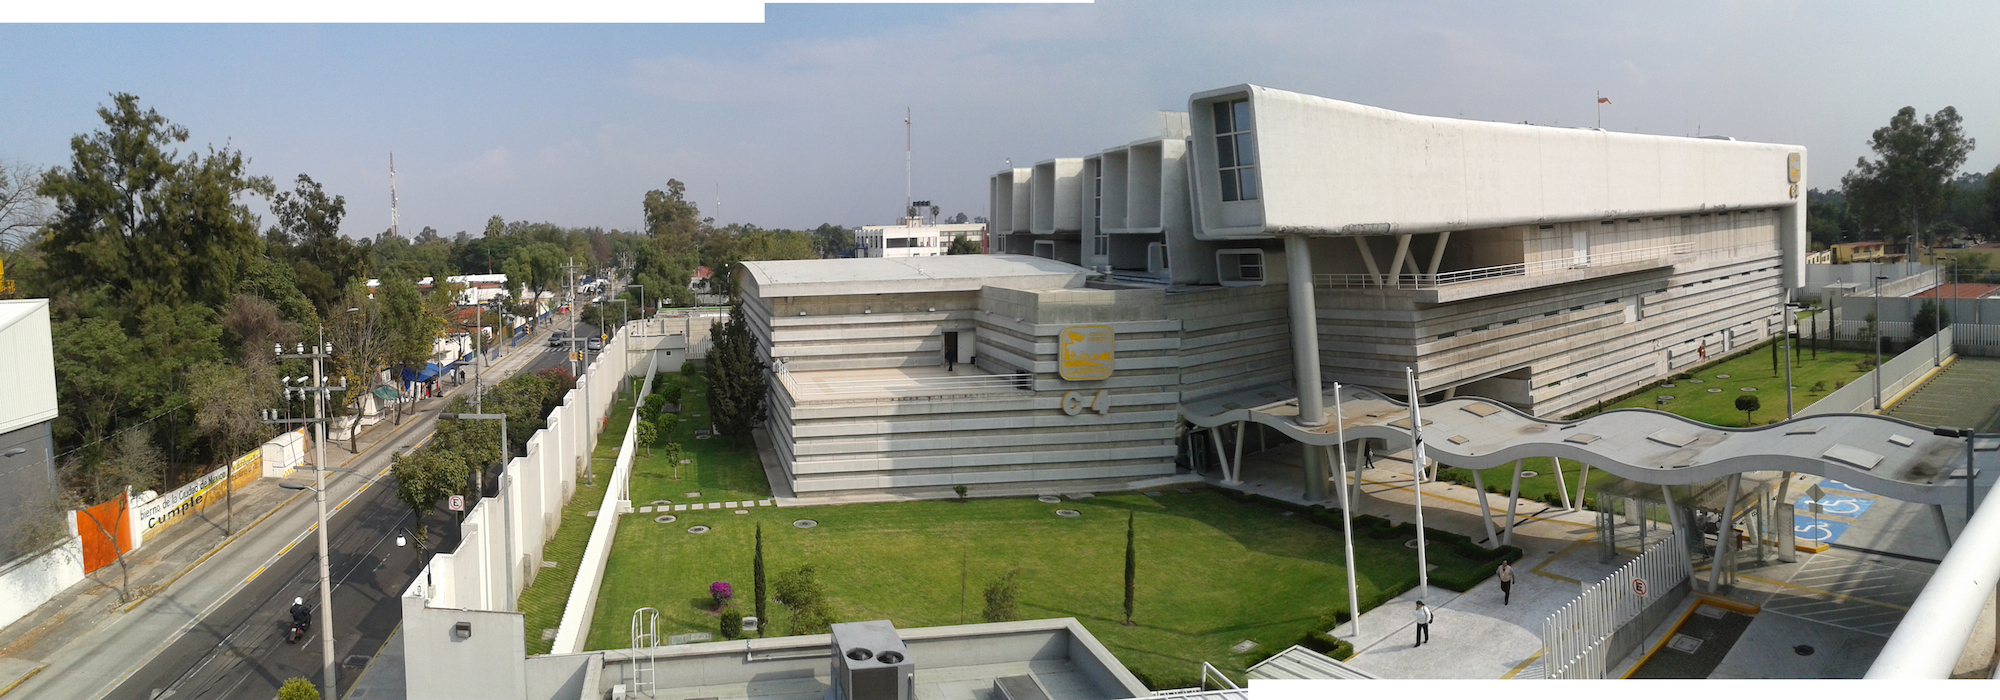 Fig. 3: Panoramic view of the C4i4 from the parking lot rooftop | photo by Paulina V. Pulido